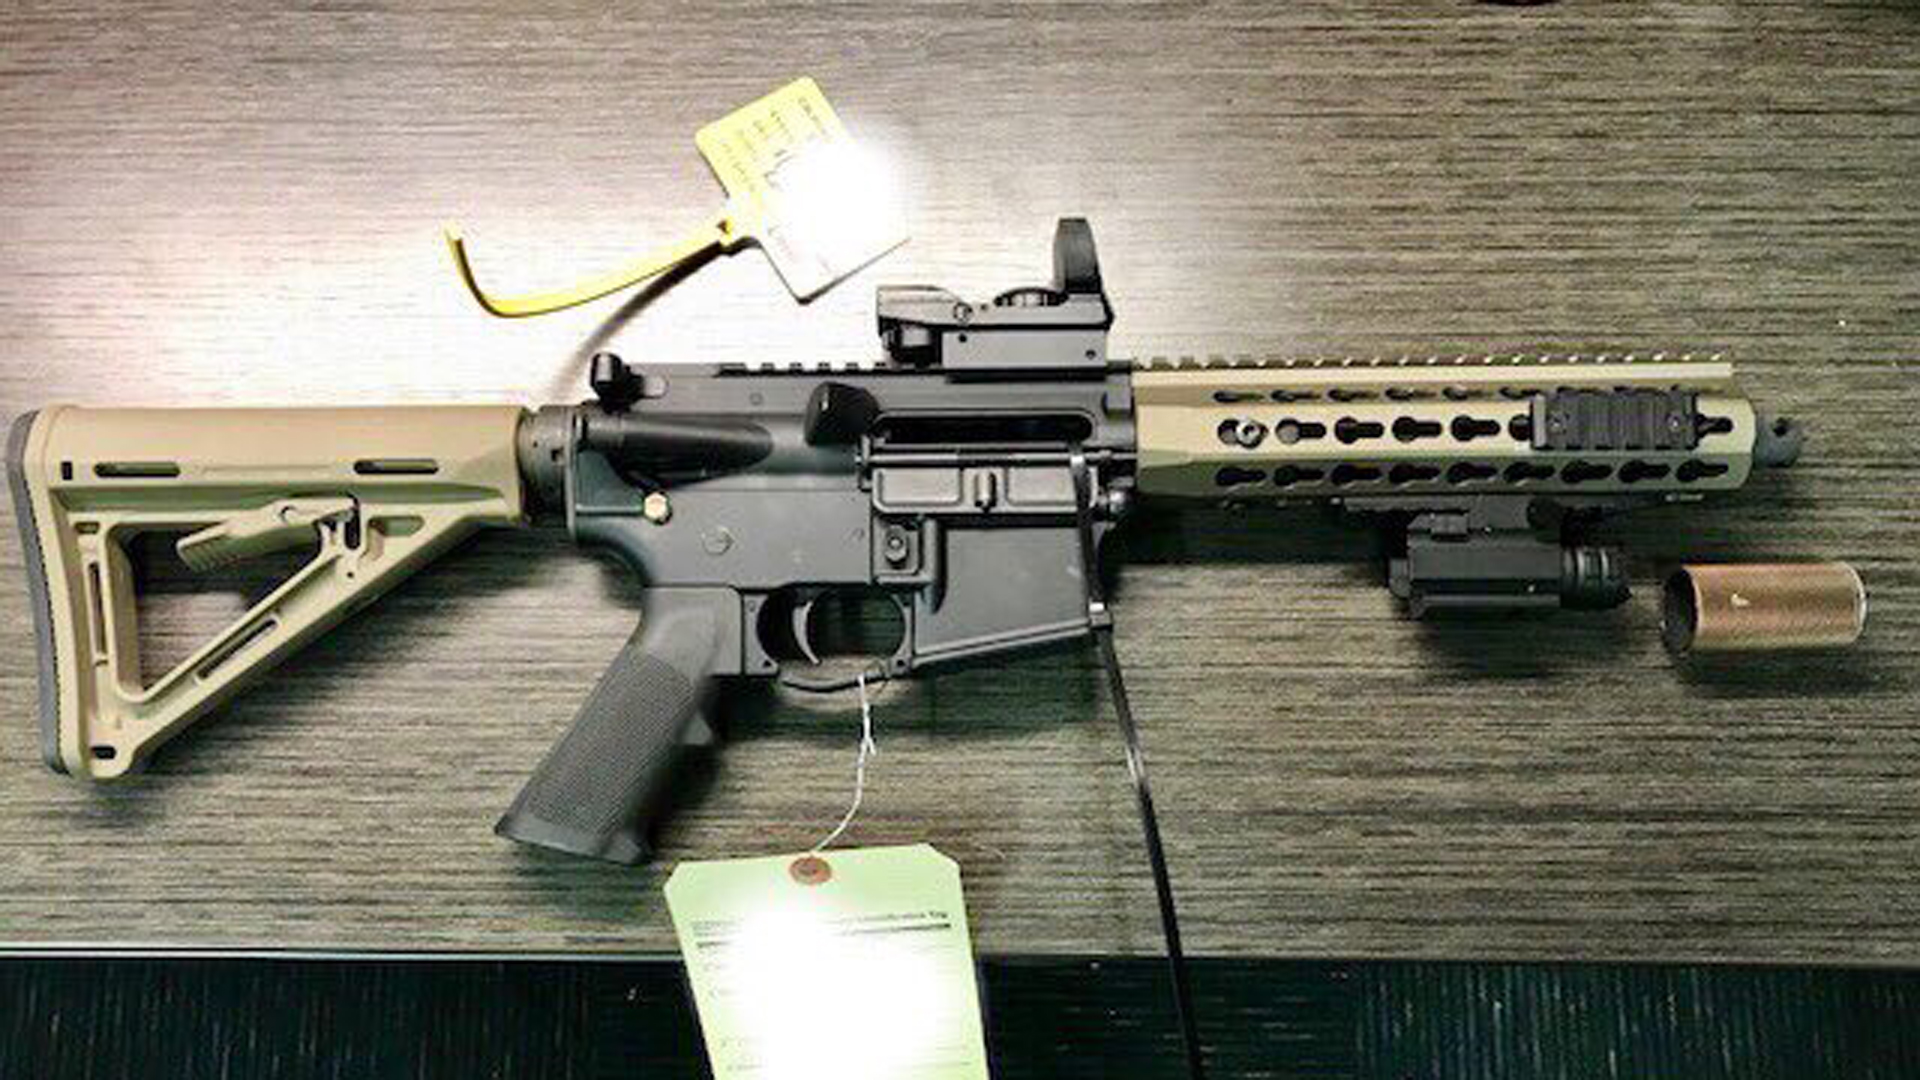 An AR-type semi-automatic rifle is seen in an undated photo released by the U.S. Bureau of Alcohol Tobacco, Firearms and Explosives.